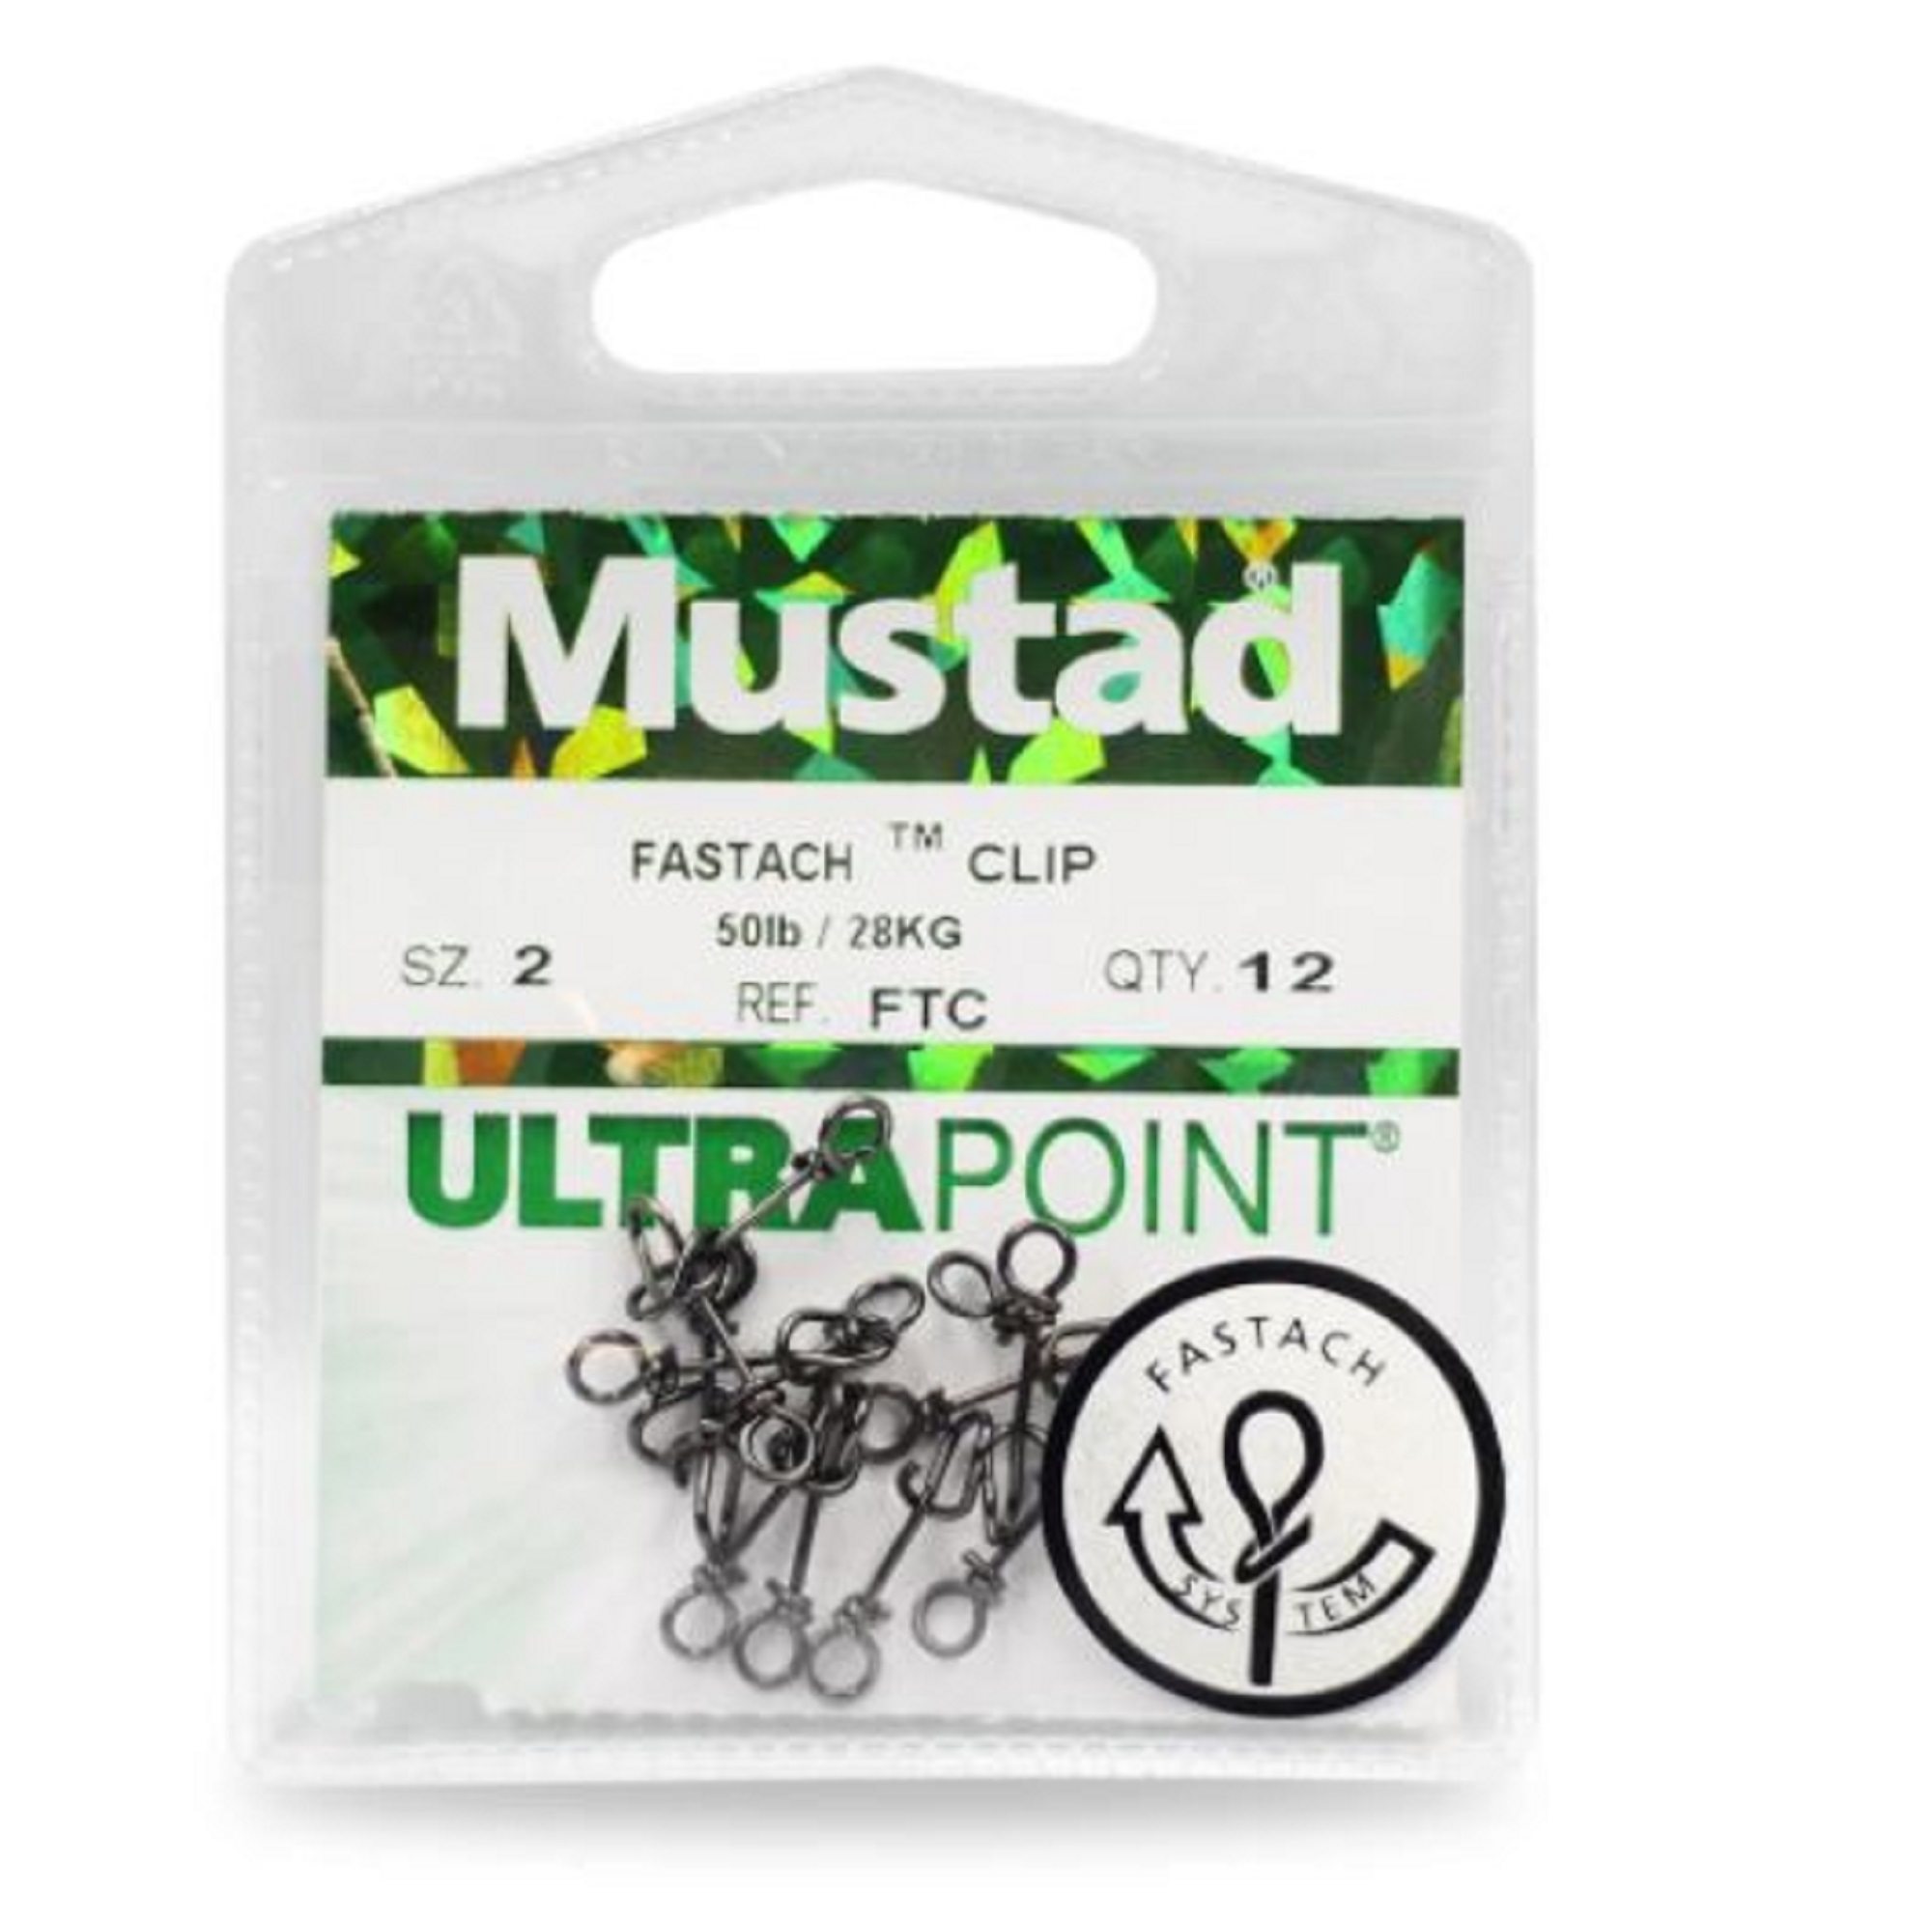 Mustad Ultrapoint Fastach Clip Size 2 Black (0851)